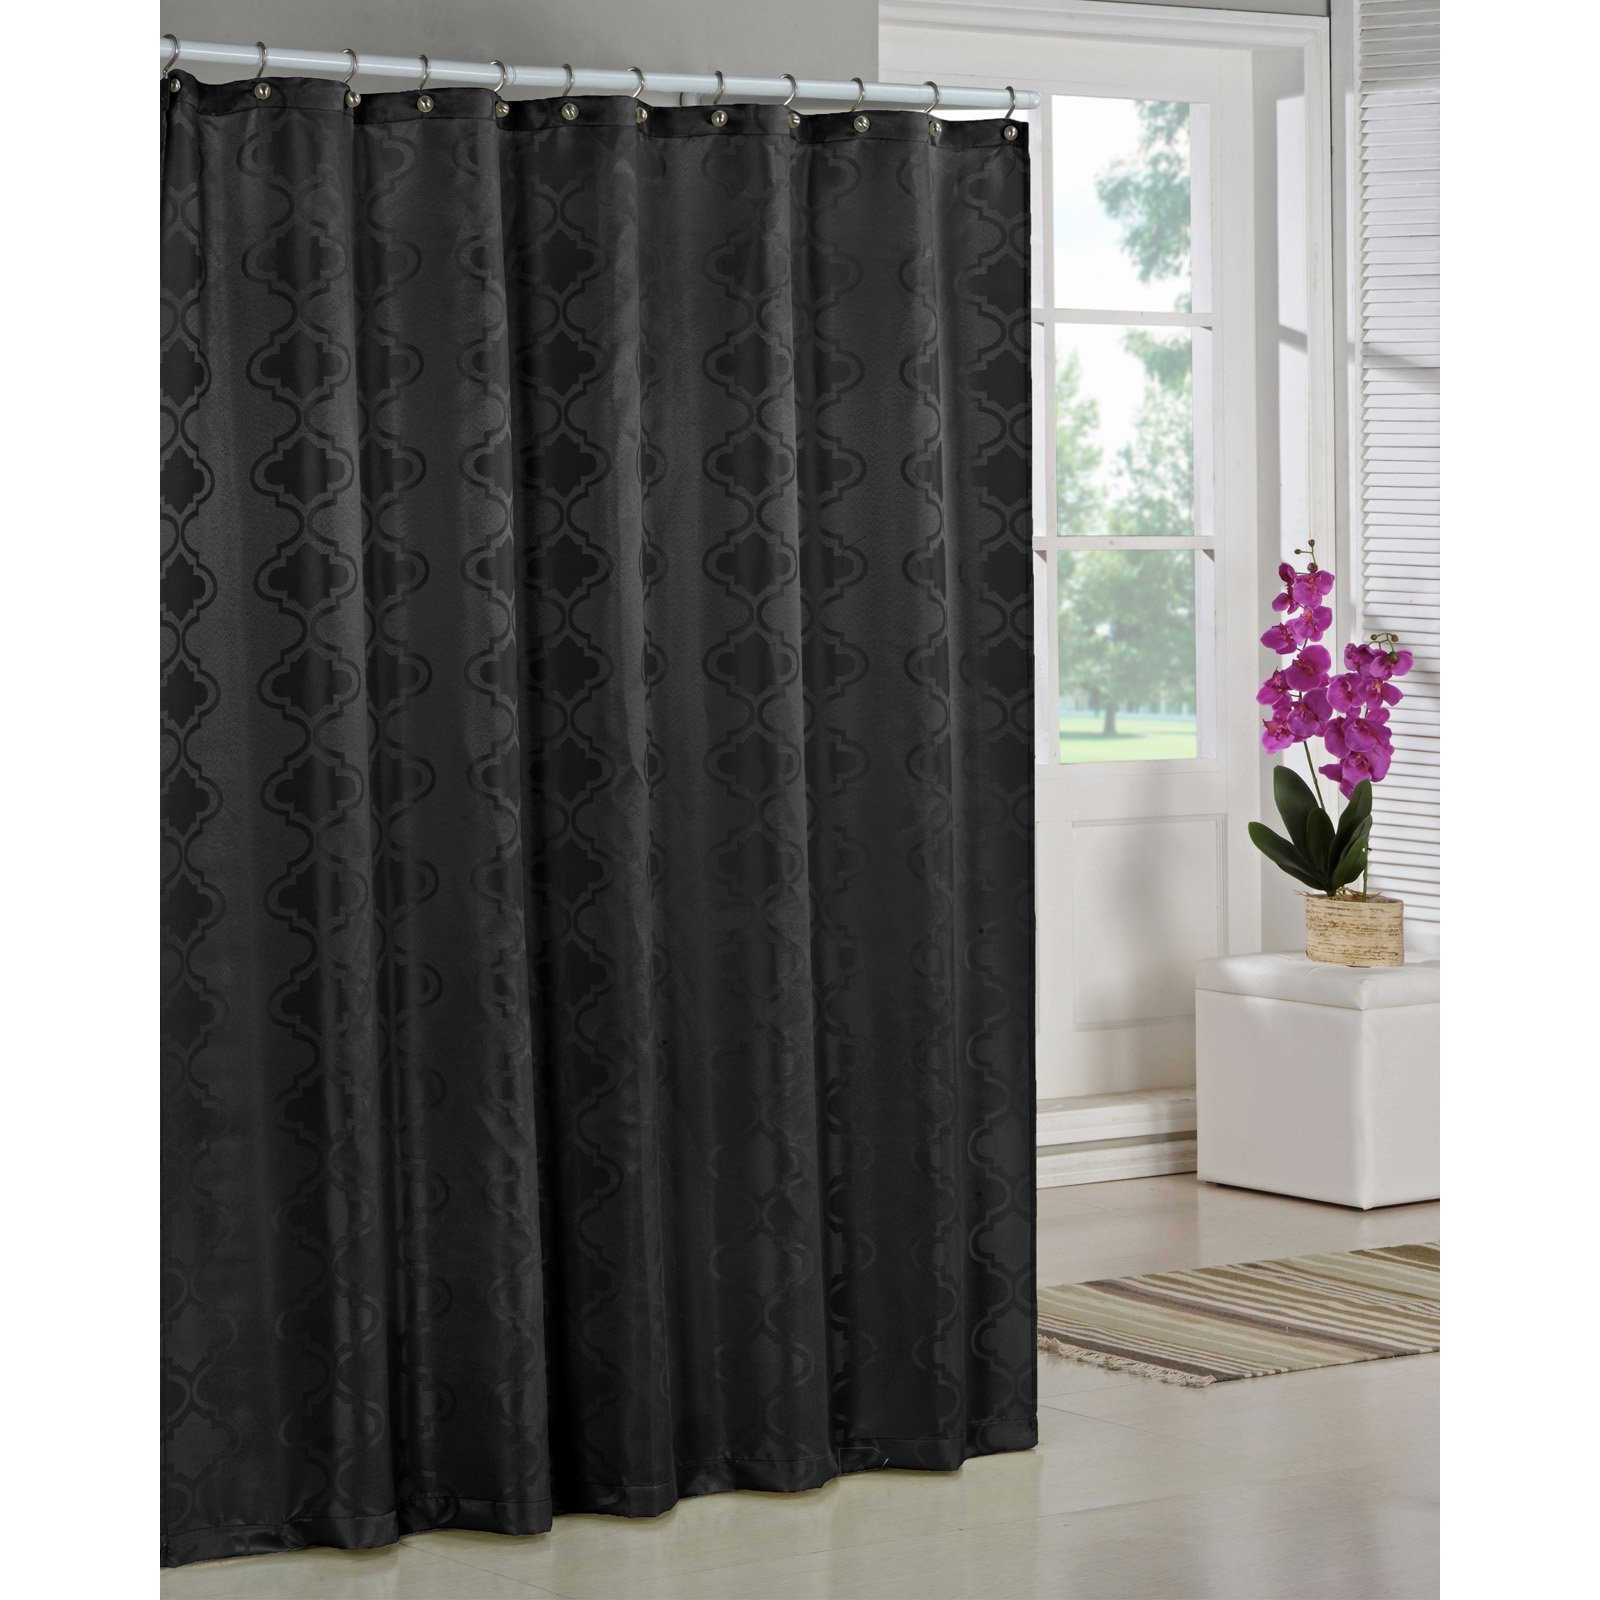 Awesome Solid Shower Curtain Pictures Inspiration Bathtub For pertaining to measurements 1600 X 1600